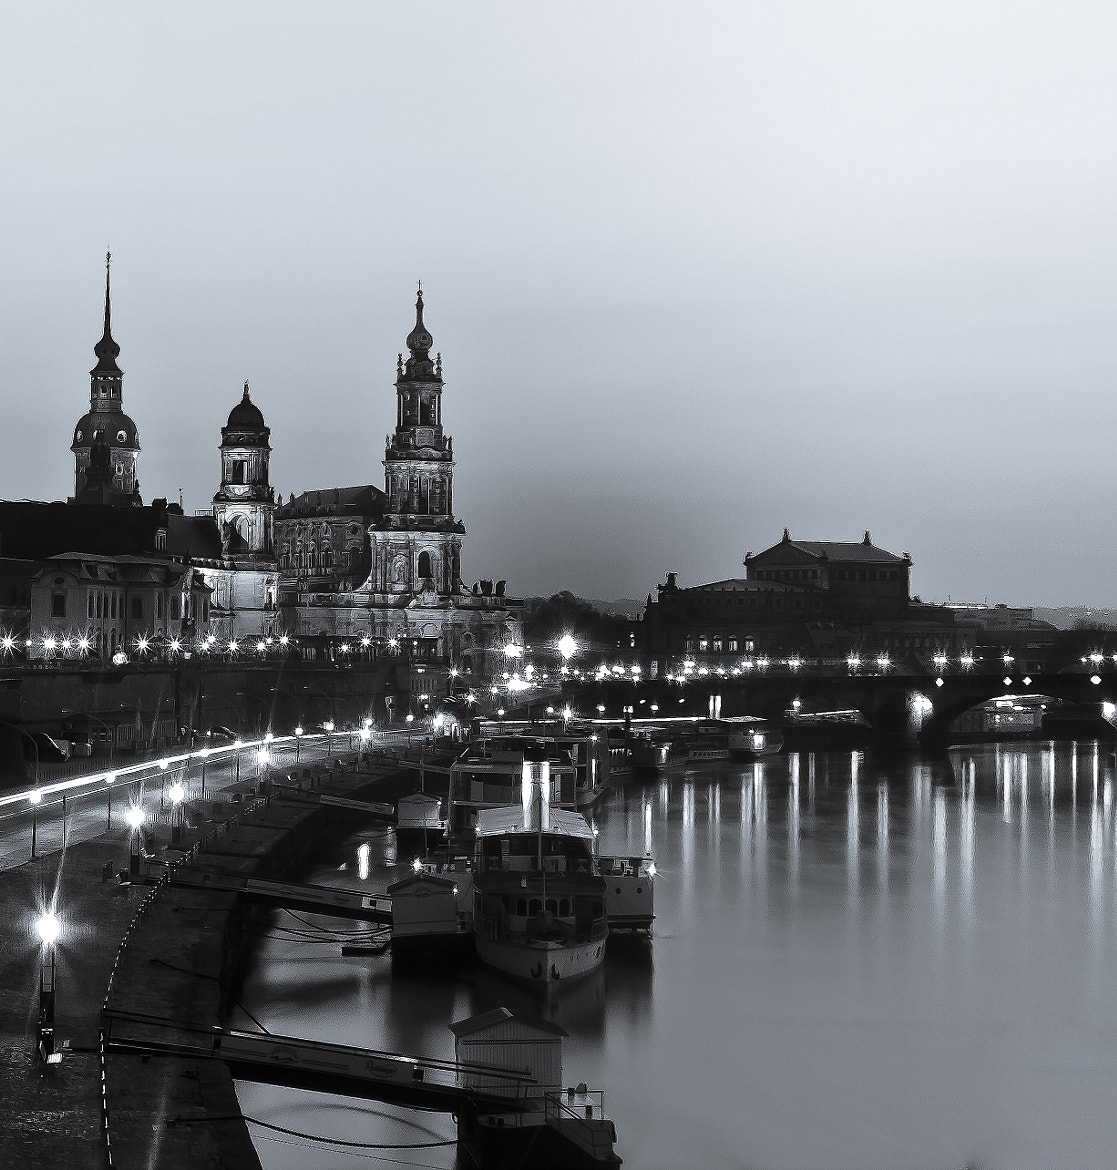 Photograph The dark side of Dresden by Steve Kalisch on 500px